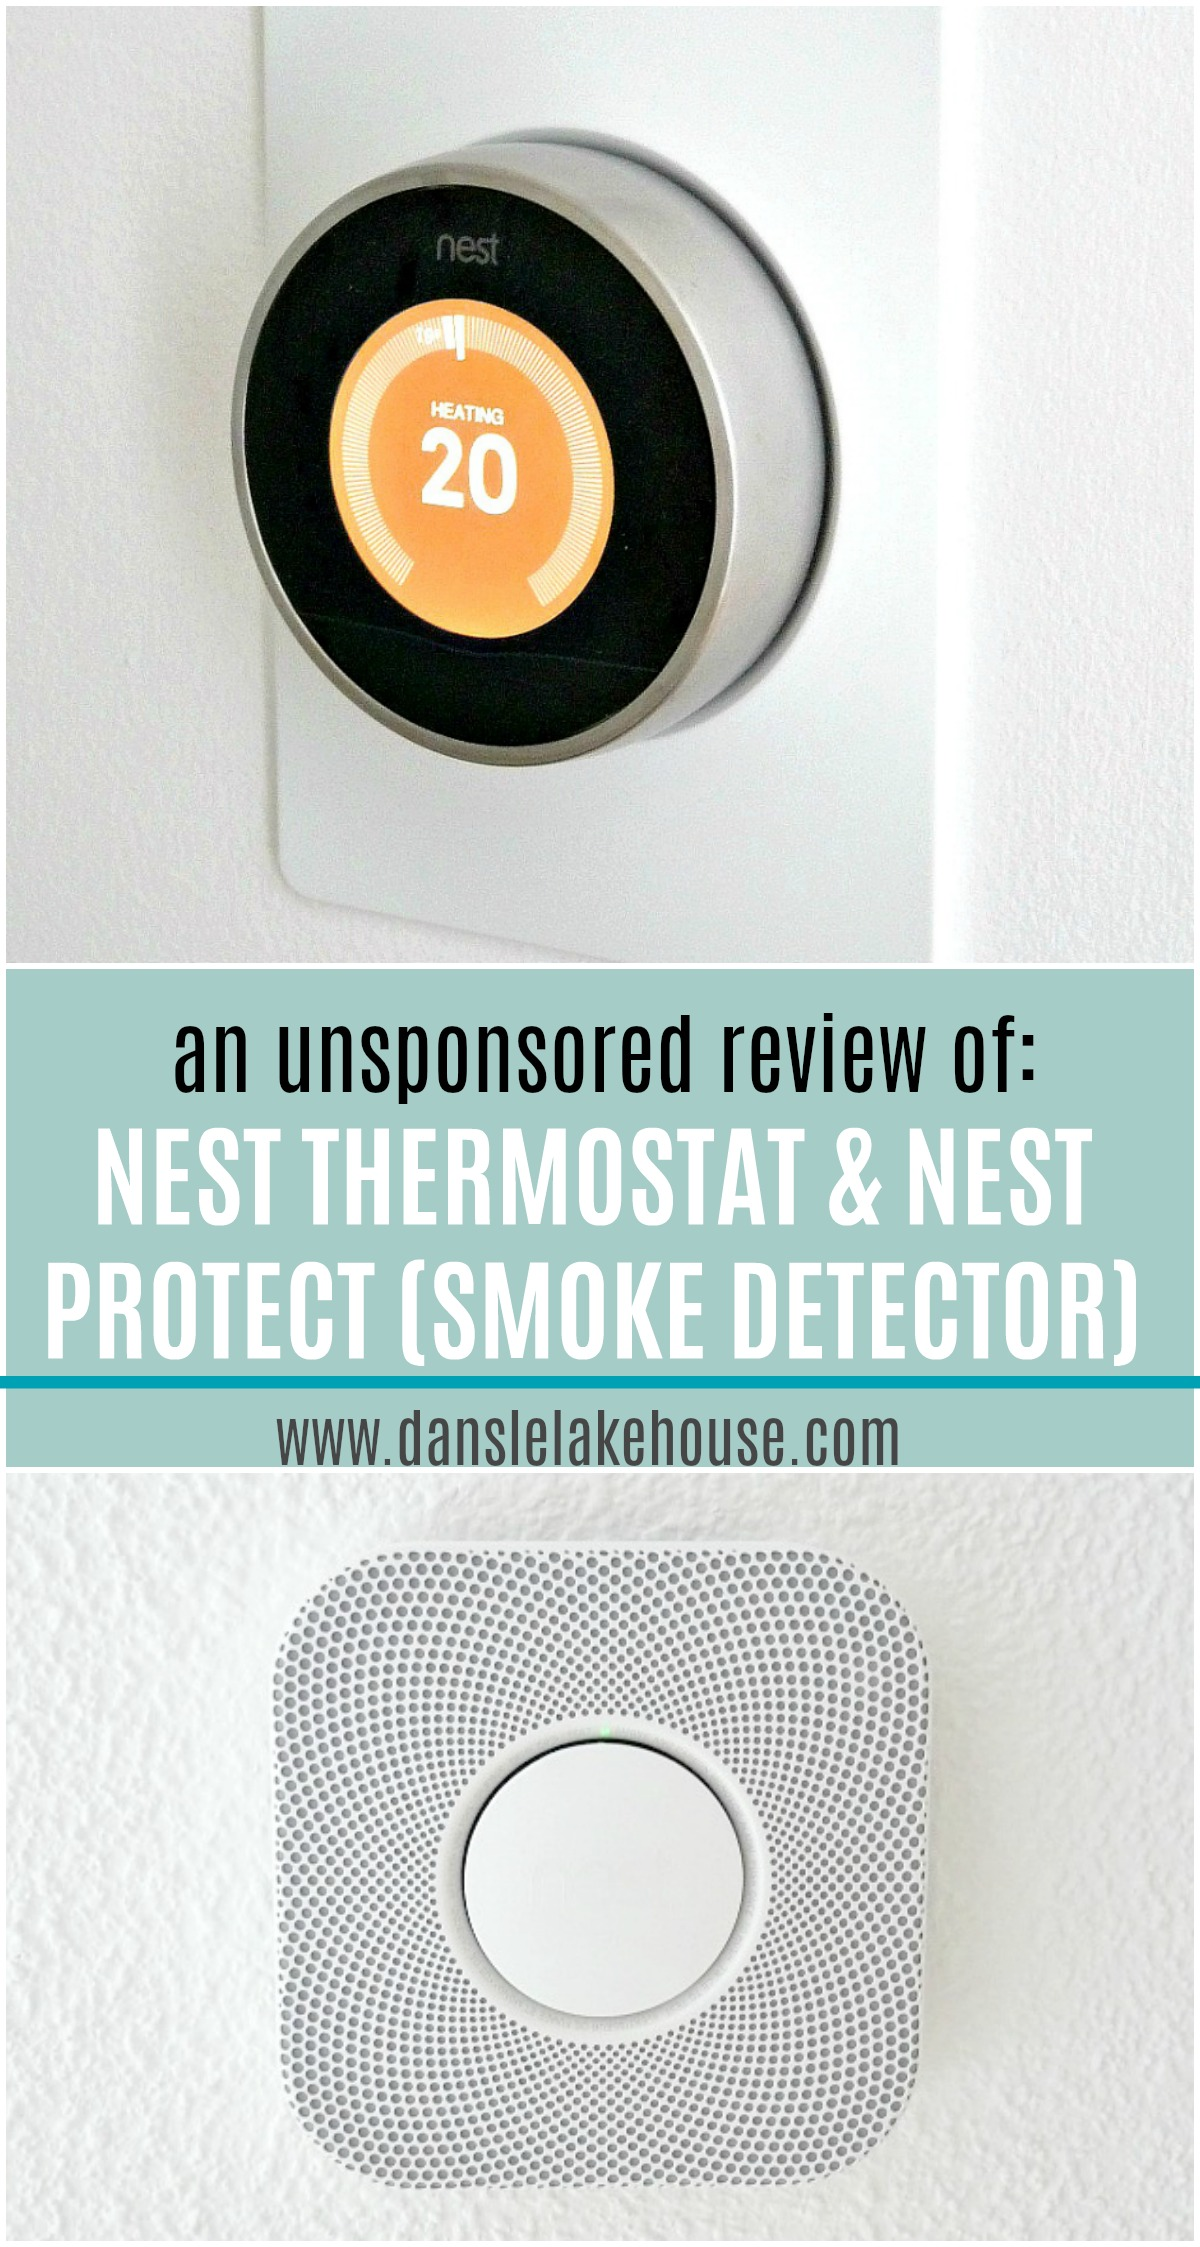 Nest Thermostat Review + Nest Protect Smoke Detector Review (NOT Sponsored)